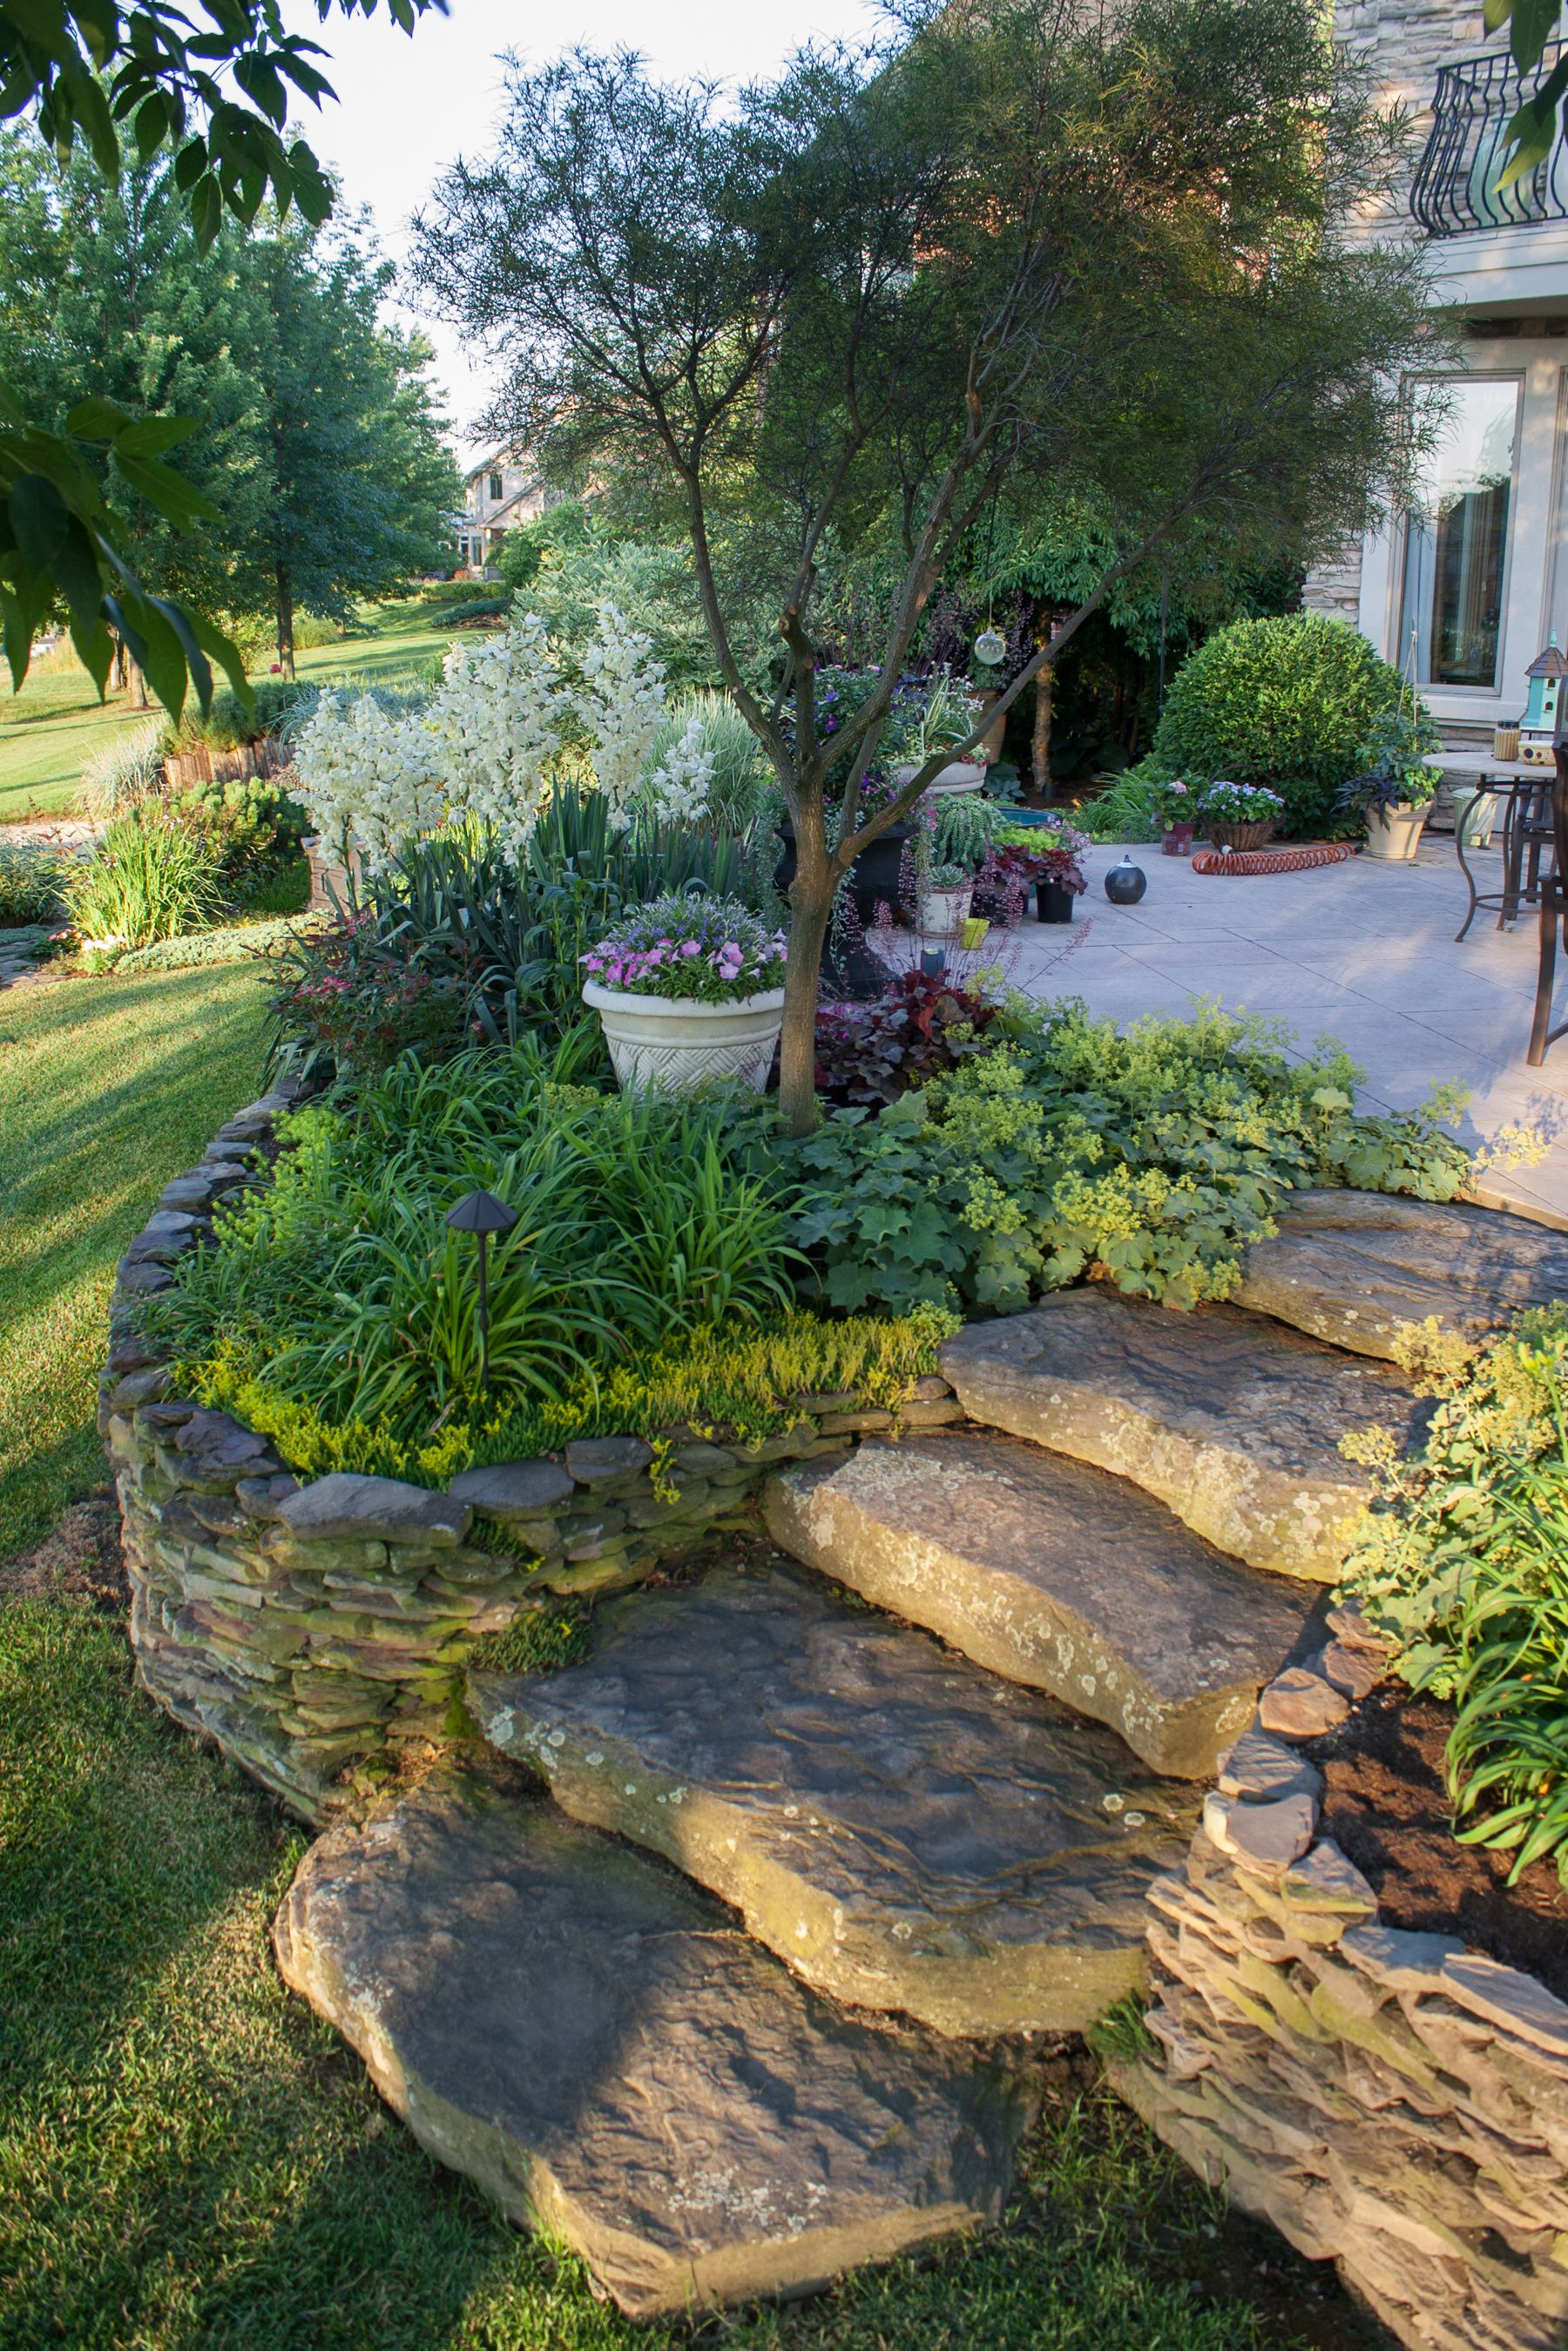 How To Design A Garden 16 Stylish Tips Gardens Flowers pertaining to Backyard Slope Landscaping